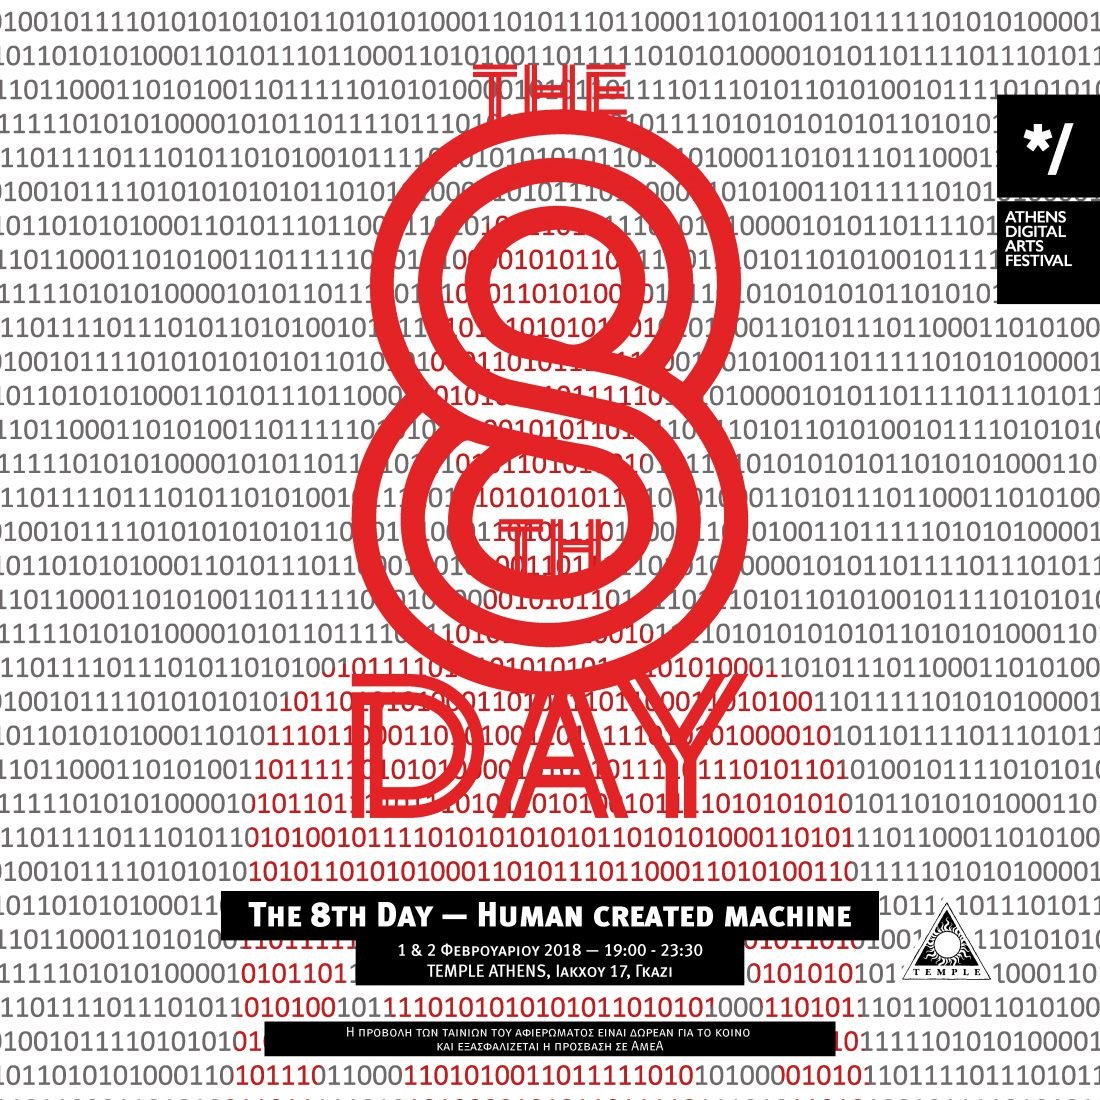 Τhe 8th Day | Human created Machine